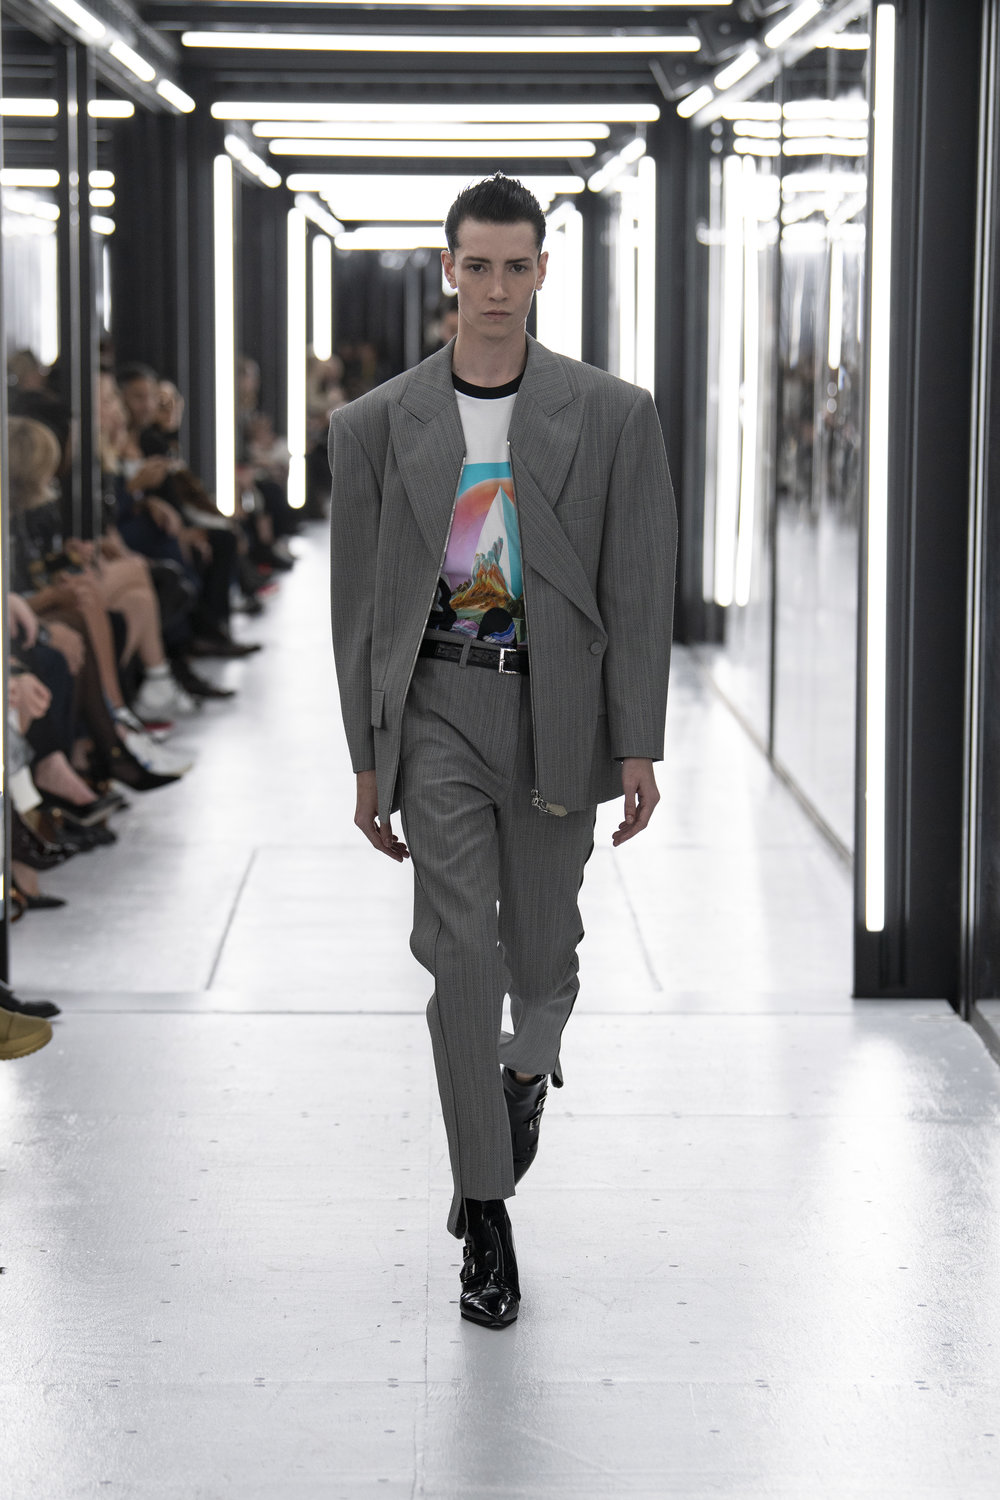 Louis_Vuitton_SS19_Look_11.jpg